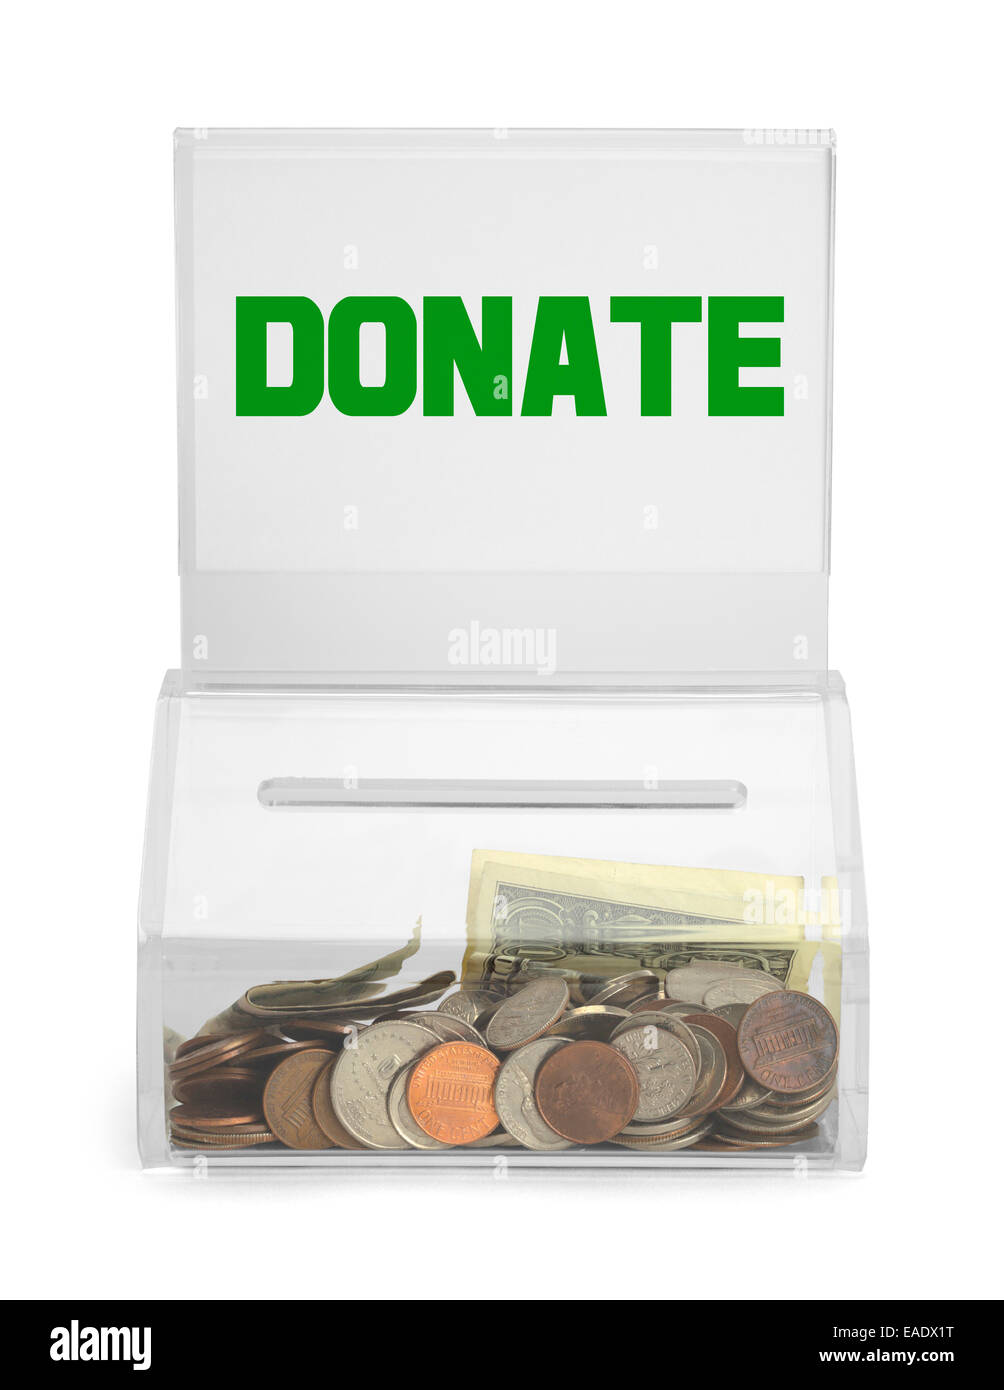 Clear Plastic Donation Box With Money Isolated on White Background. - Stock Image